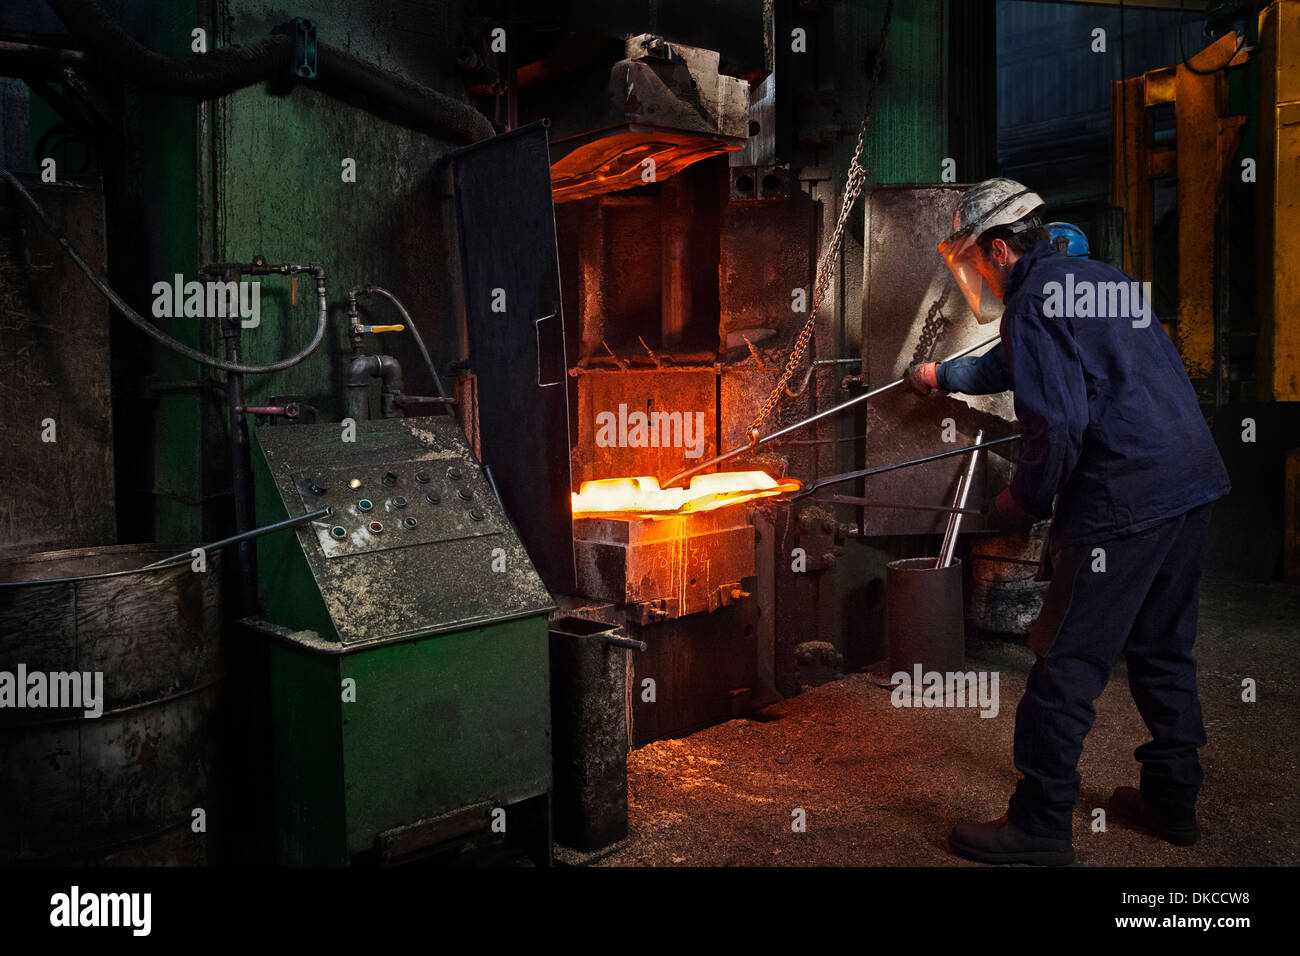 Flight bar (mining component) having been forged in big hammer, is levered off the counterblow hammer - Stock Image